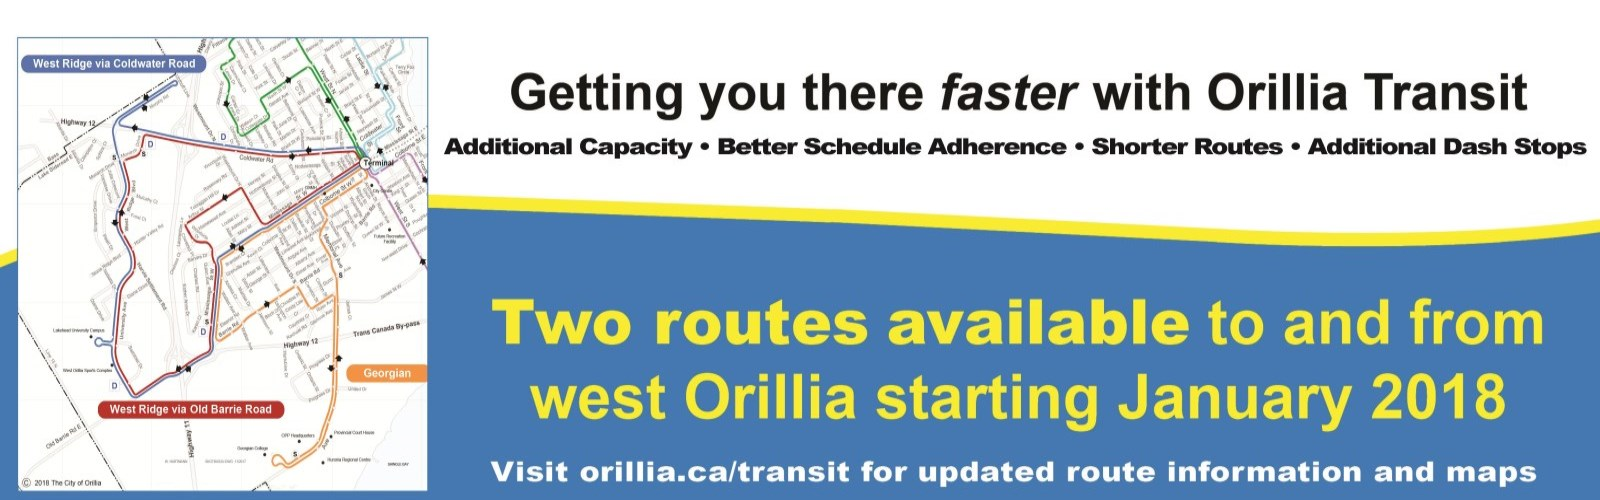 route map & schedules - city of orillia